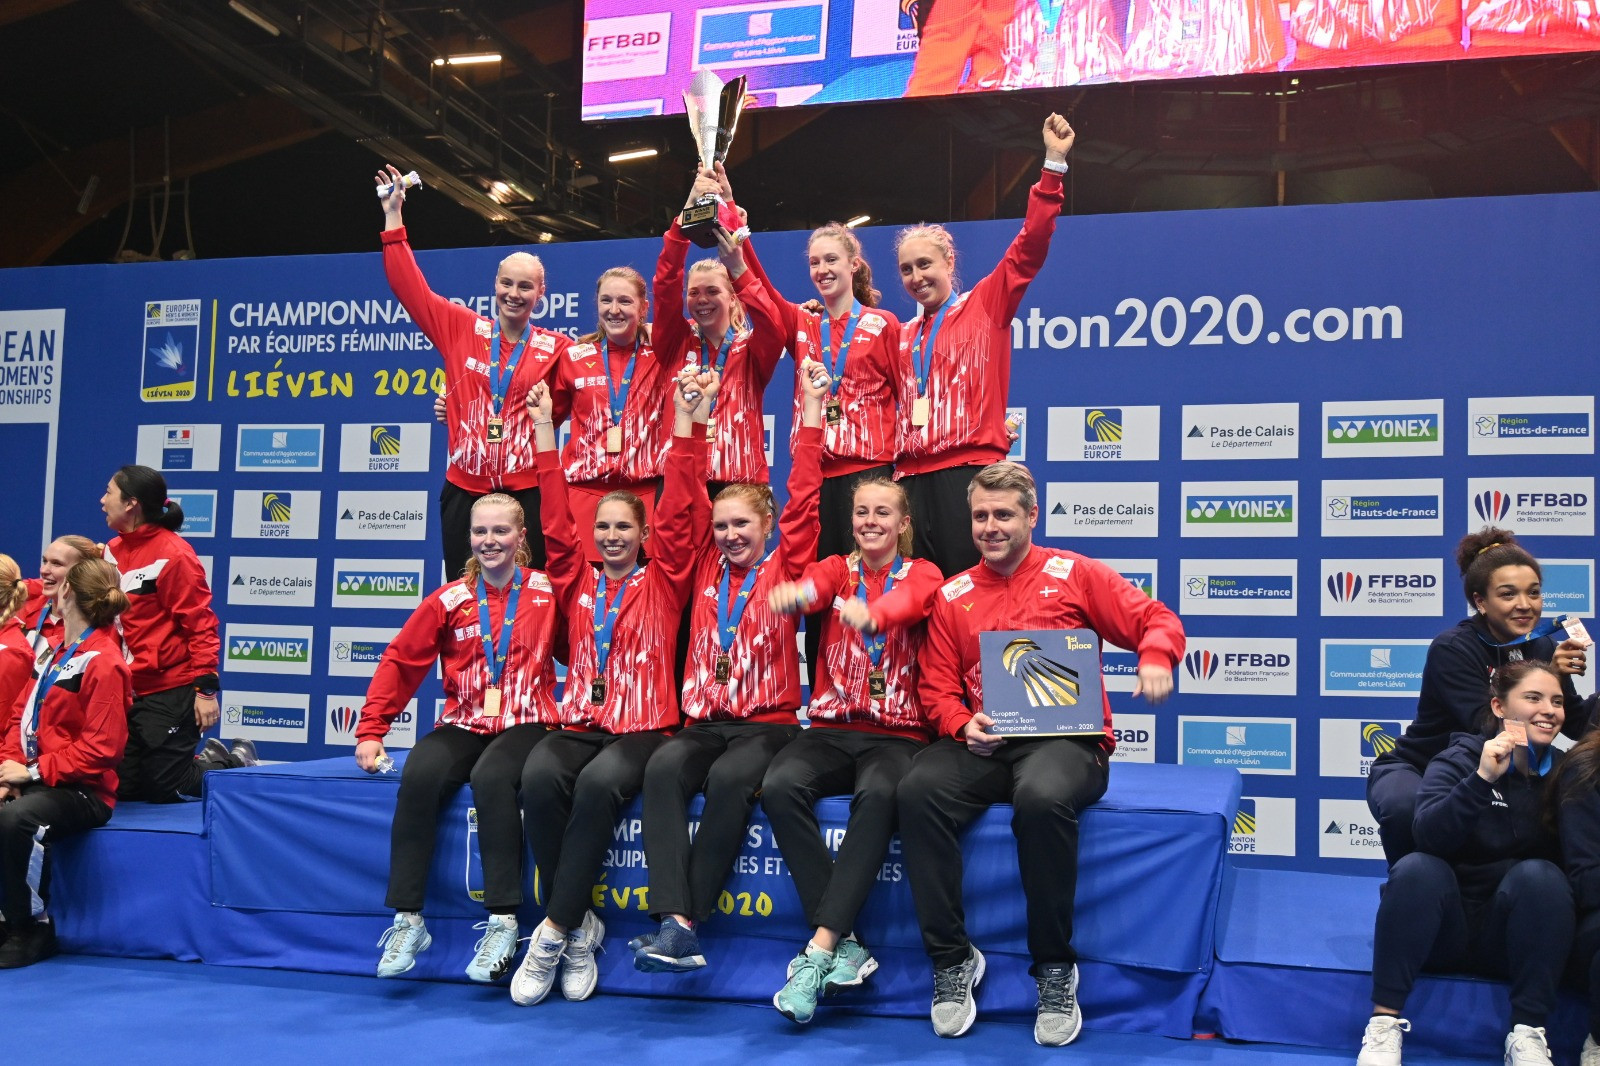 Denmark's women celebrate victory at the European Team Championships in Lievin ©Badminton Europe